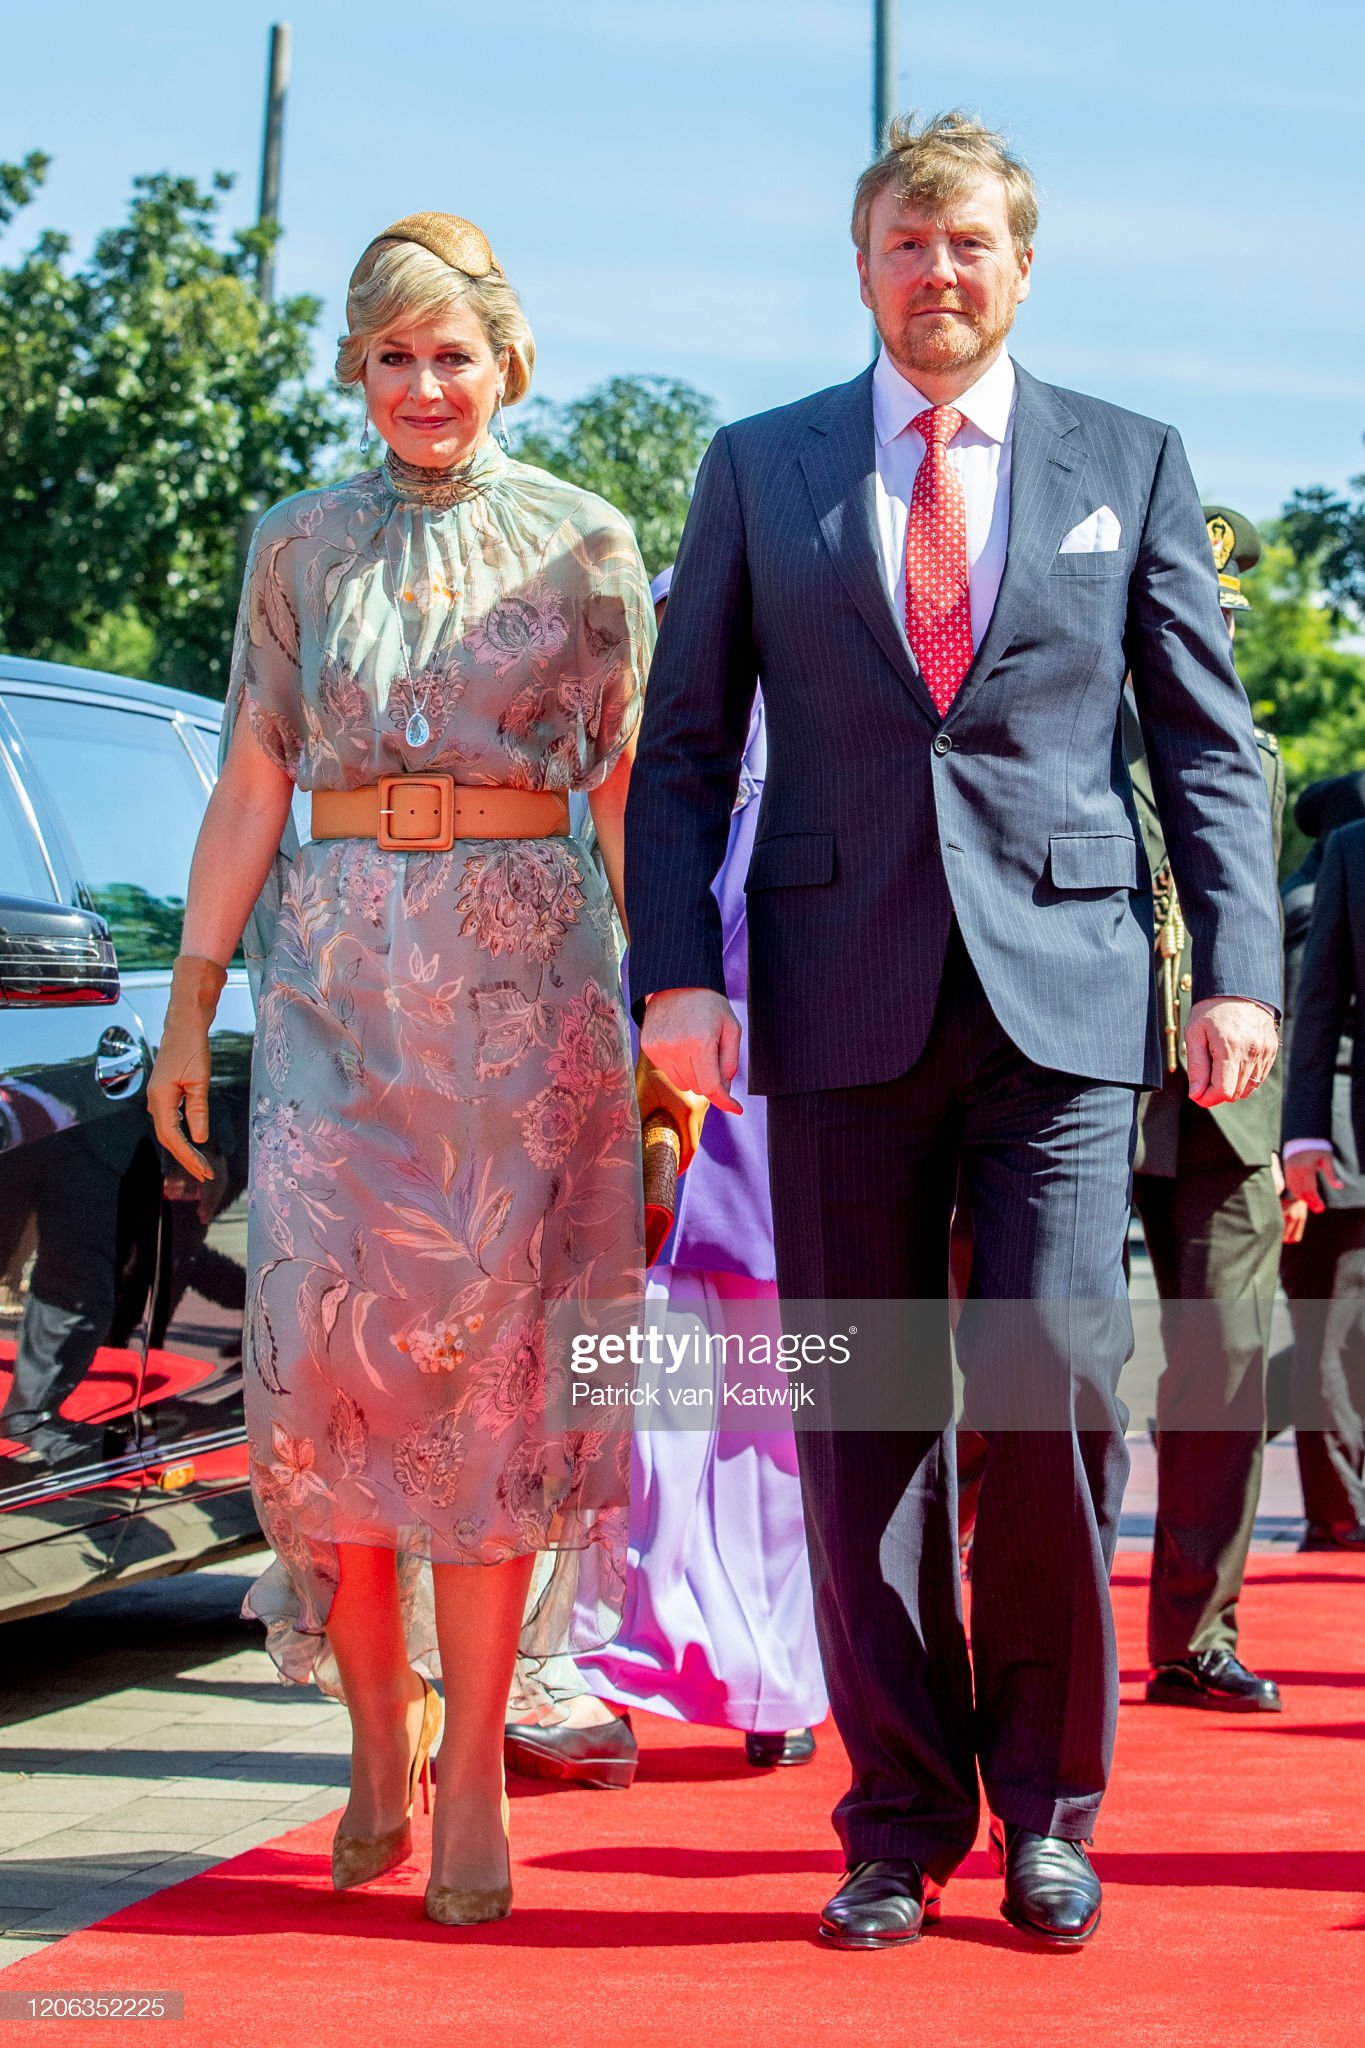 https://media.gettyimages.com/photos/king-willemalexander-of-the-netherlands-and-queen-maxima-of-the-a-picture-id1206352225?s=2048x2048